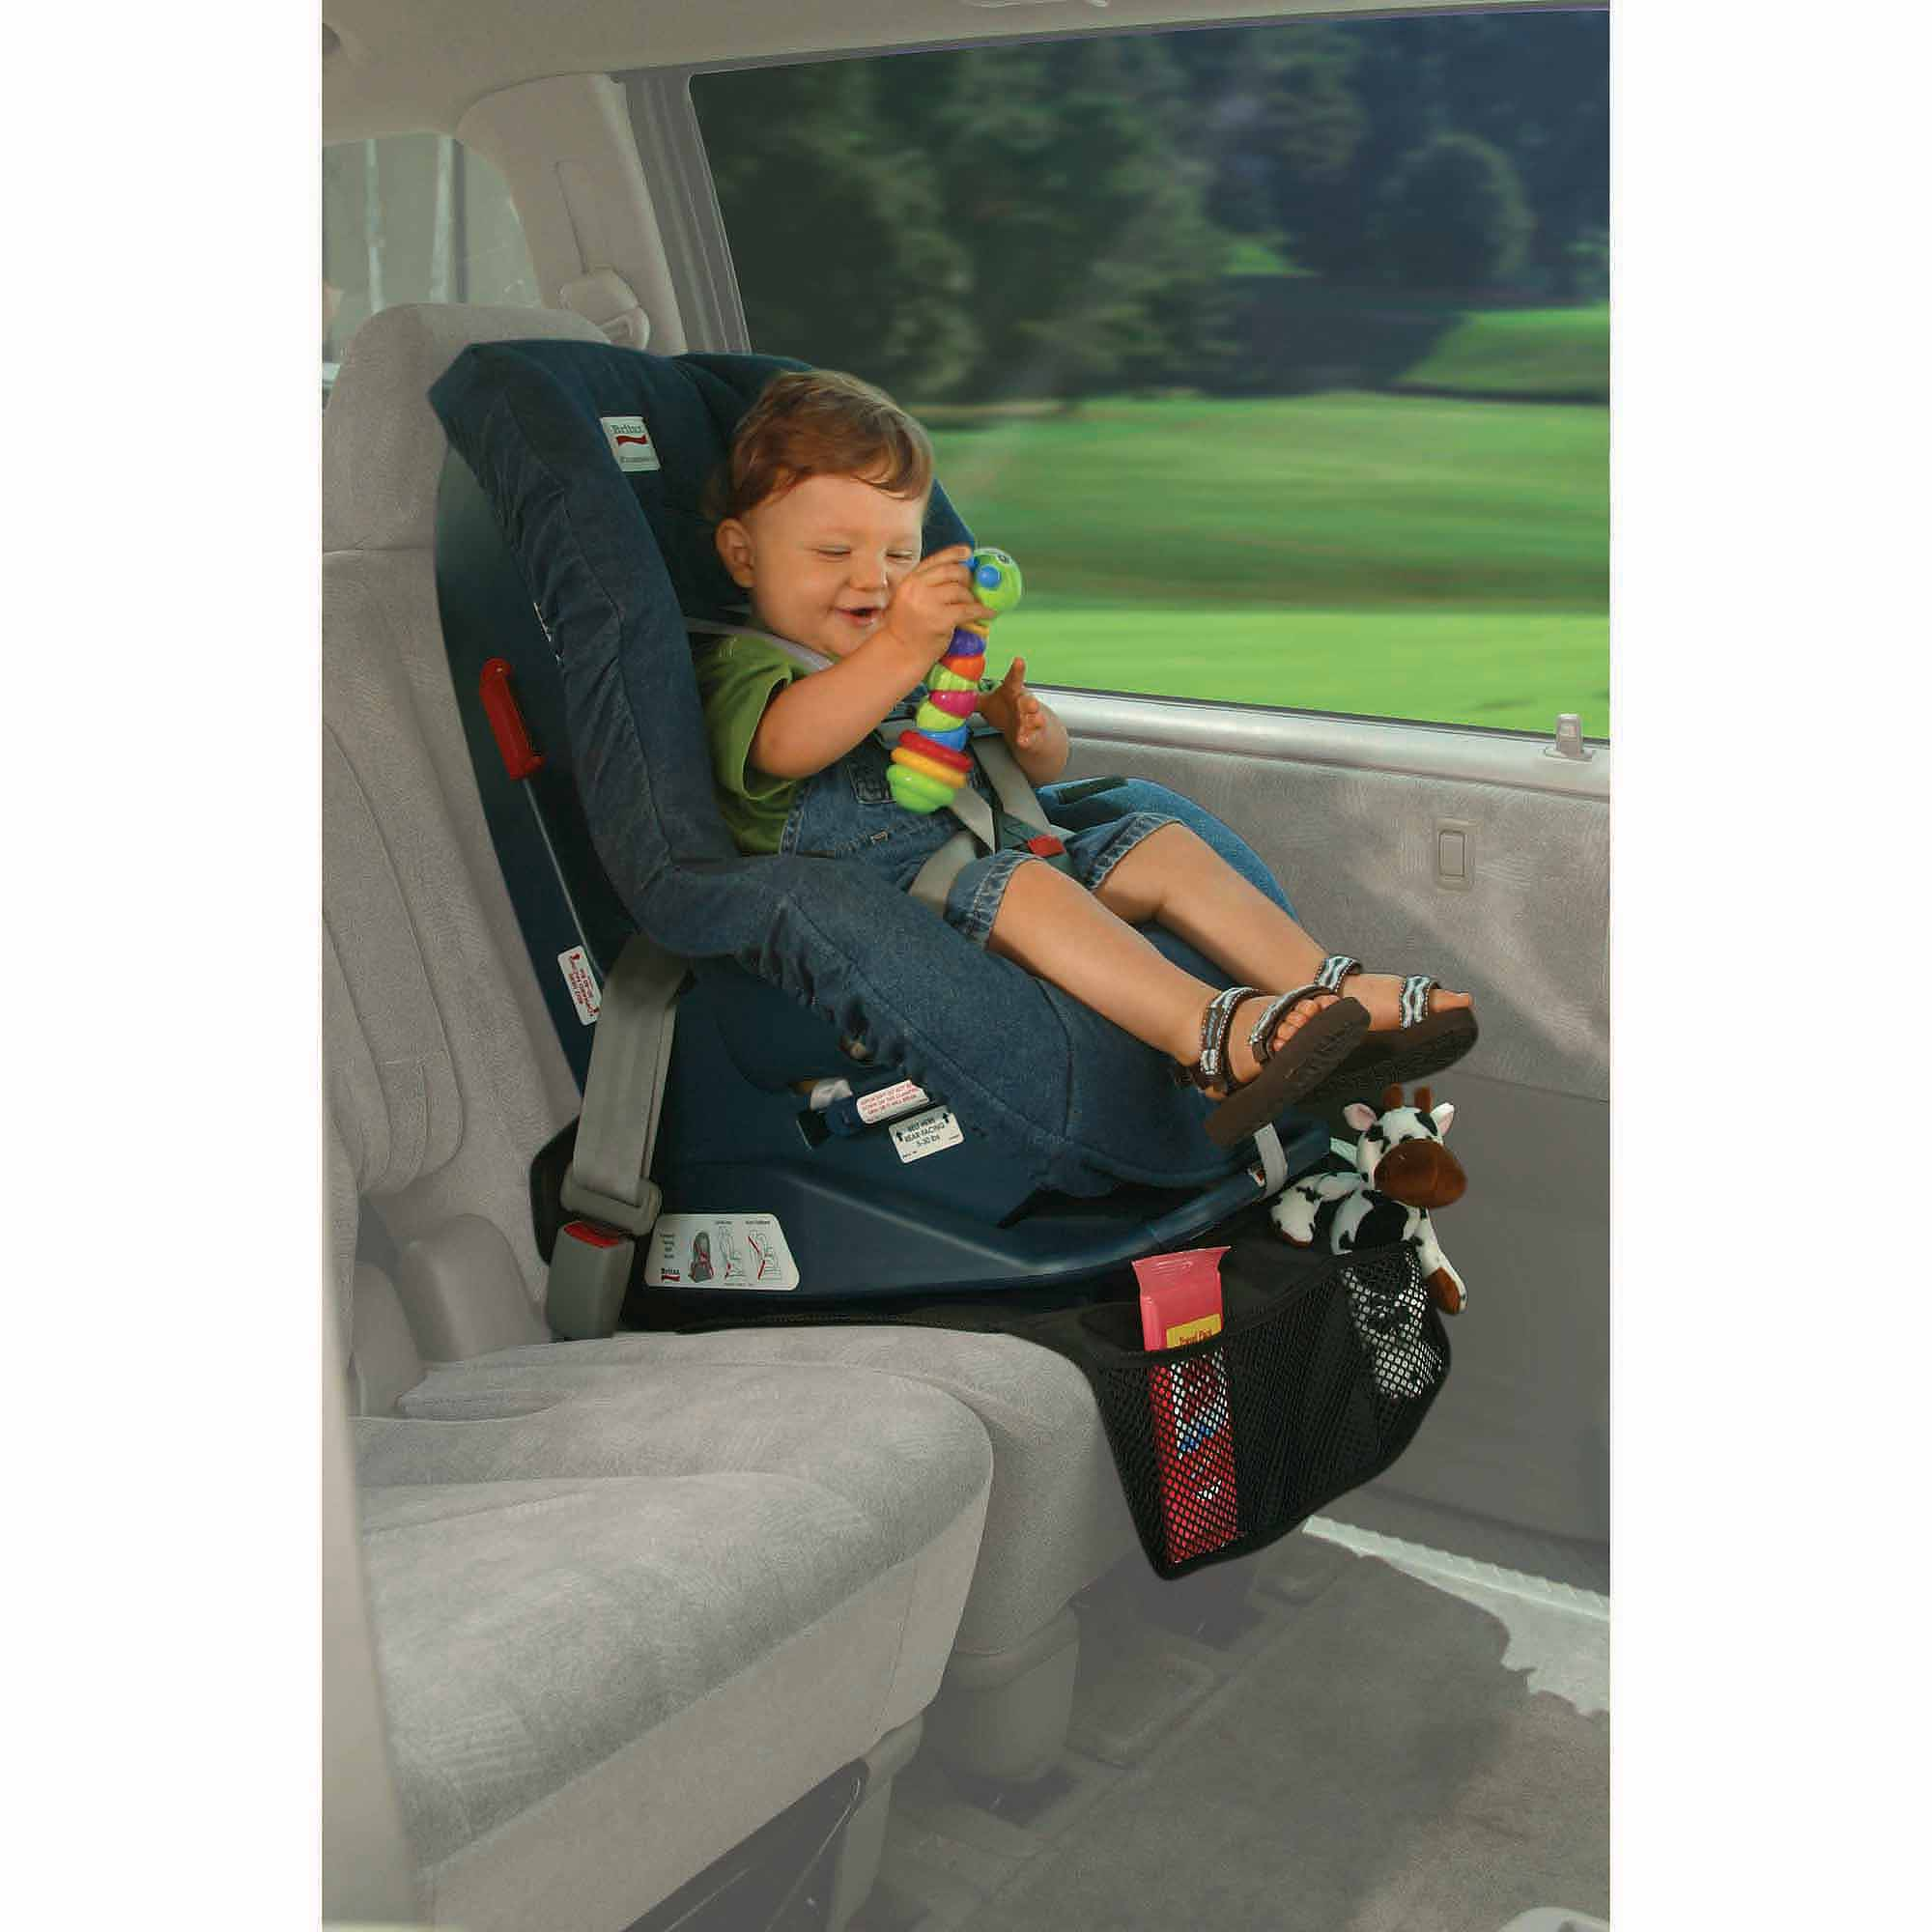 Prince Lionheart Compact Seatsaver & Baby View Mirror